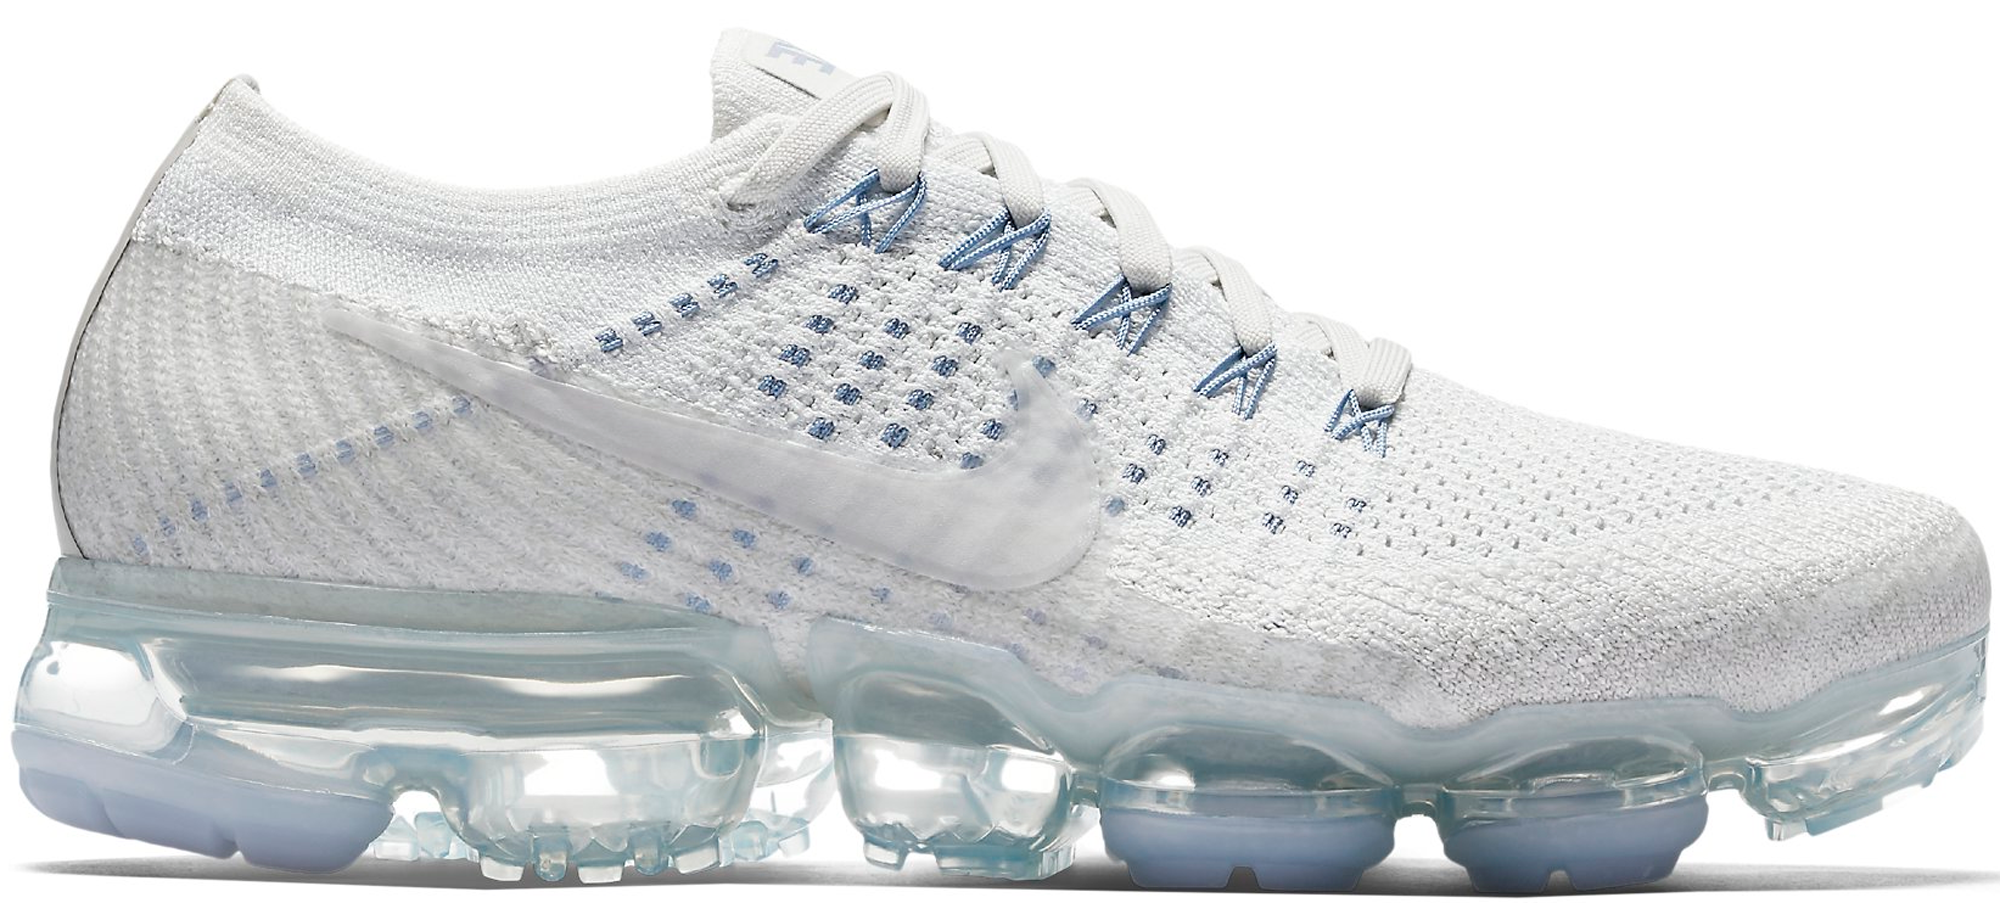 6b1c27a588451 Women s Nike Air VaporMax Pale Grey Black Sail Pure Platinum NikeLab Oreo  White Ice